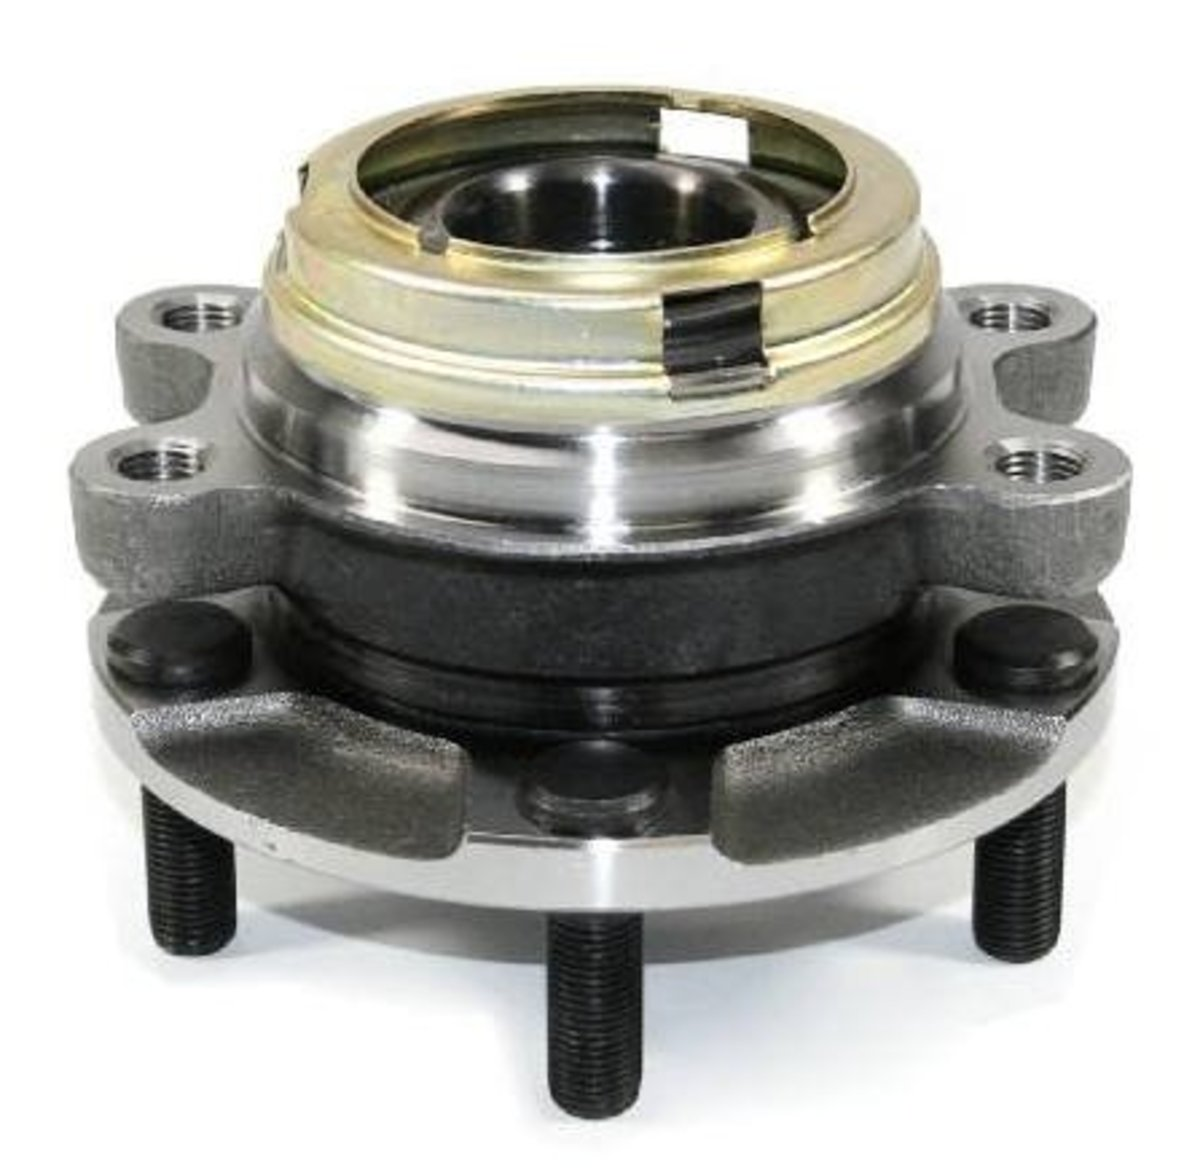 DIY Nissan Murano/Quest Front Wheel Bearing Hub Replacement | AxleAddict